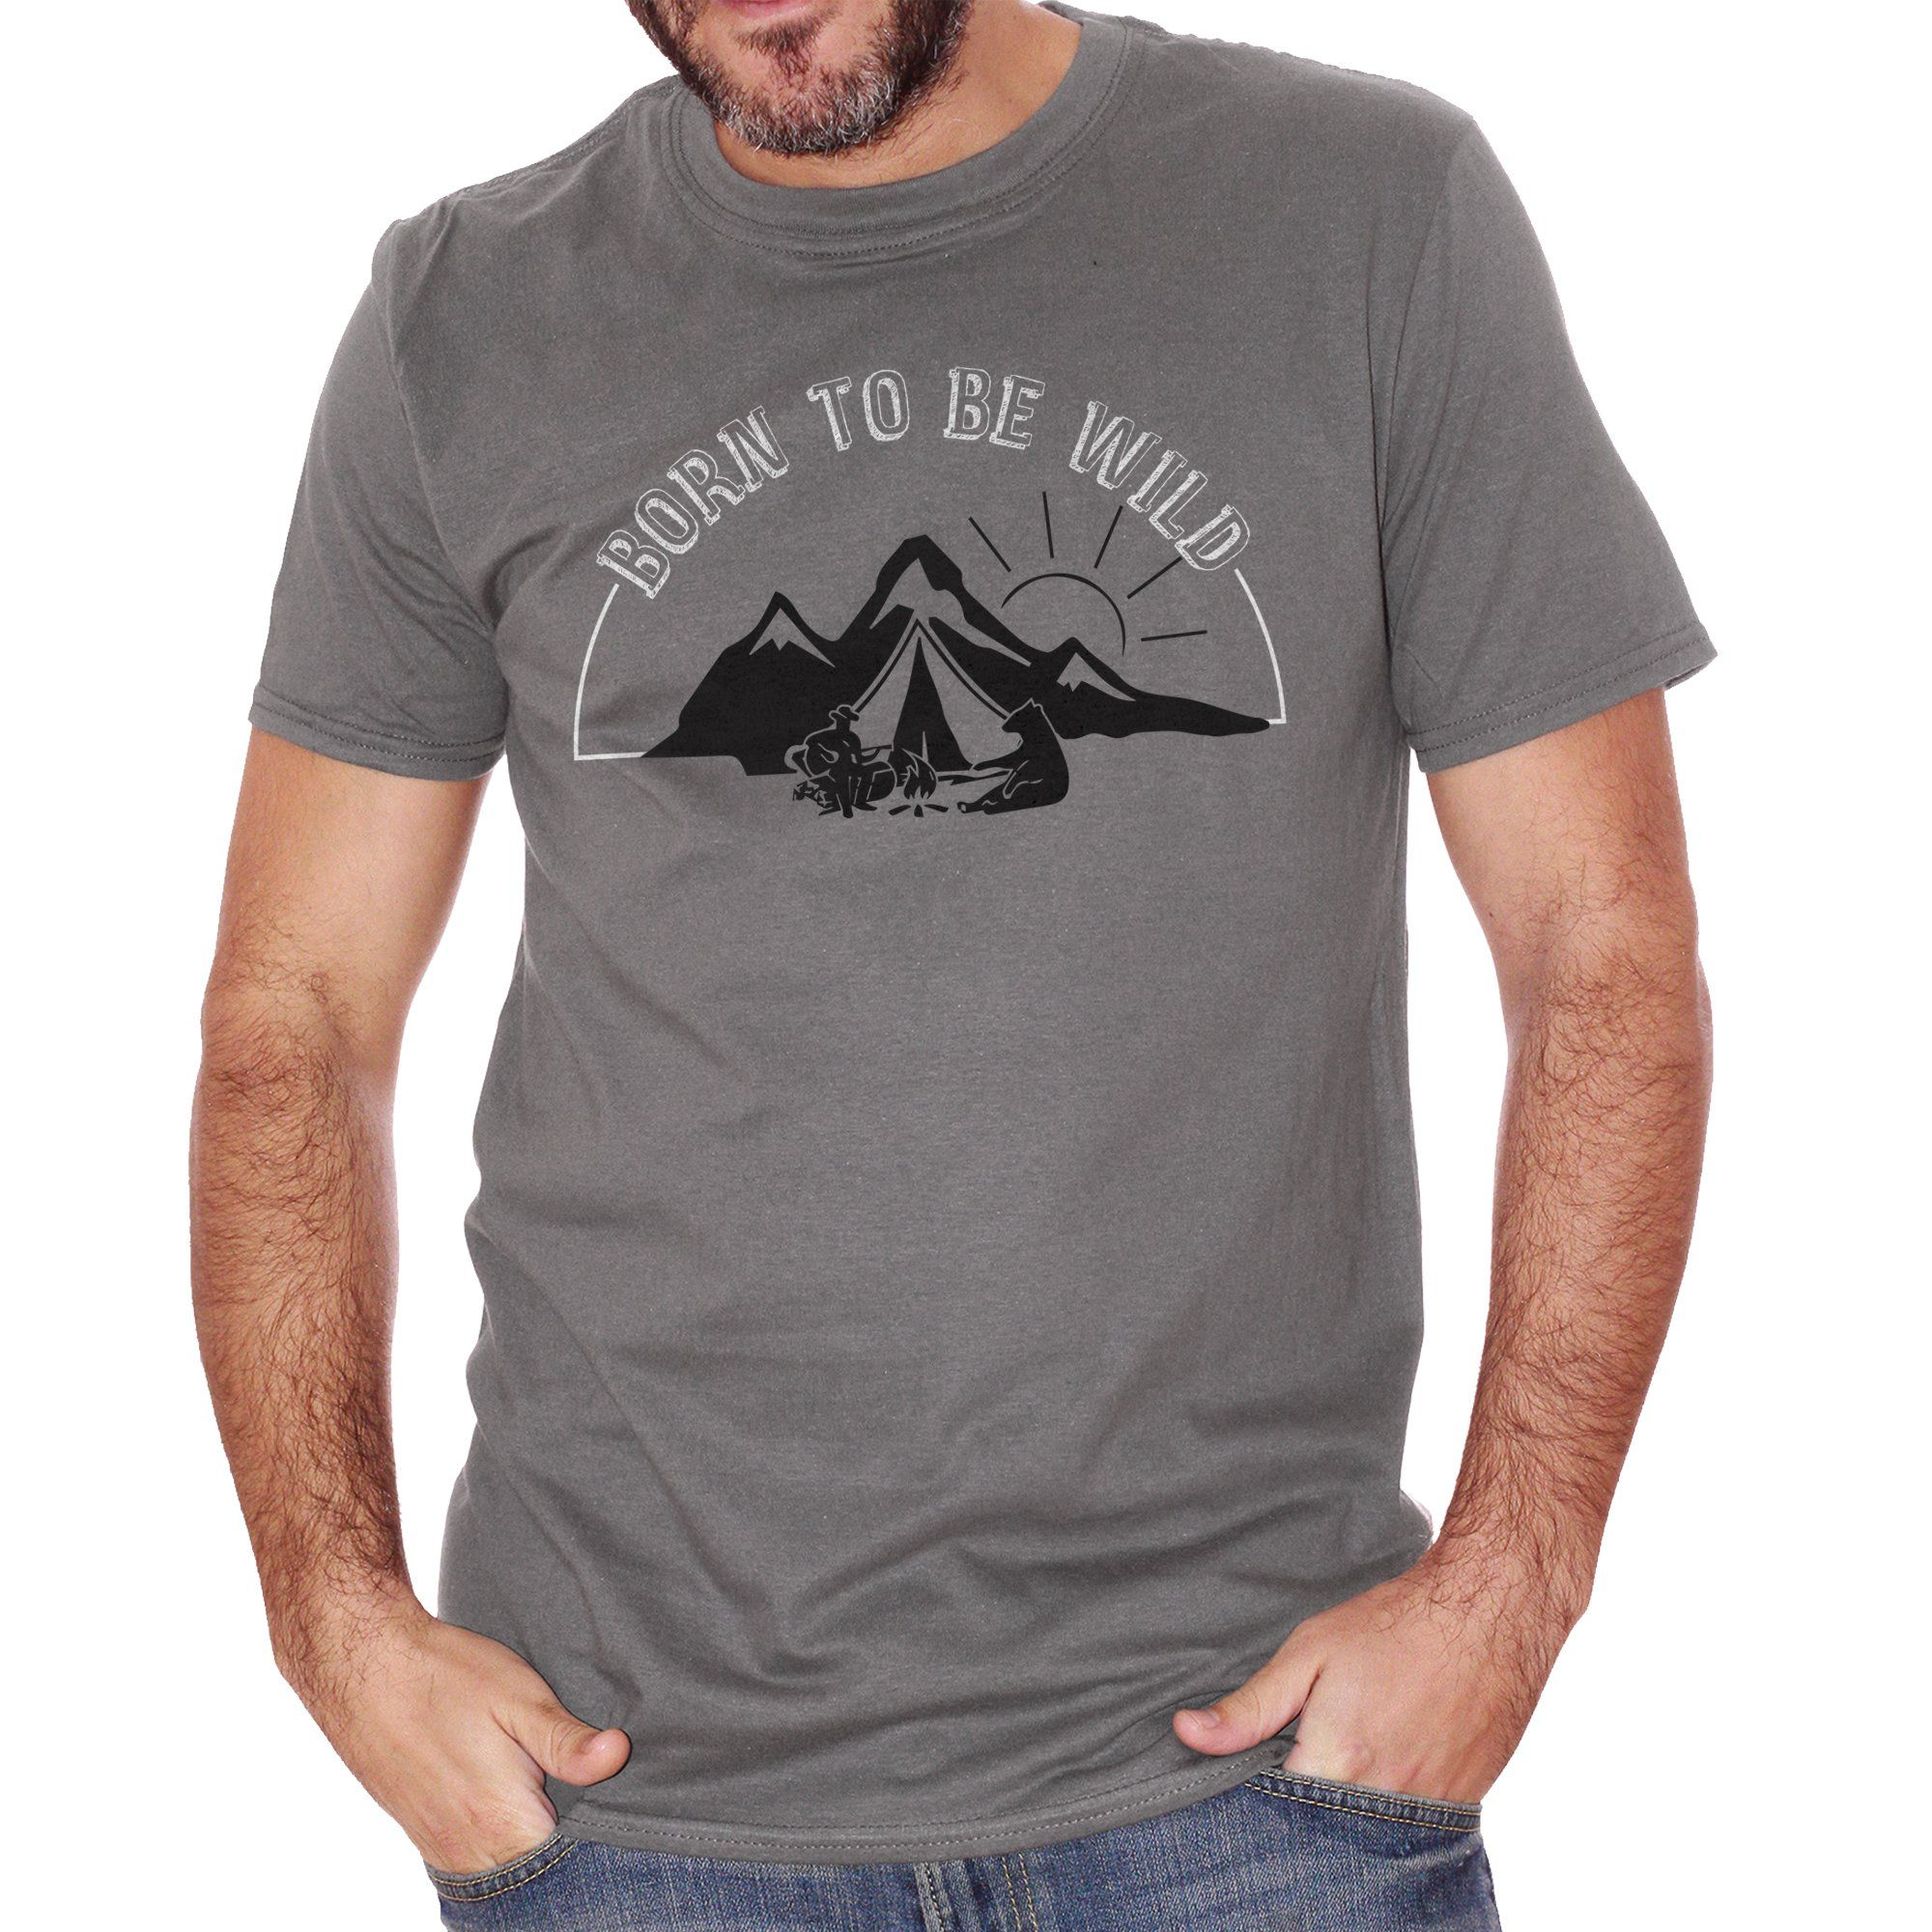 Dim Gray T-Shirt Born To Be Wild Nature Camp Camping - DIVERTENTE CucShop